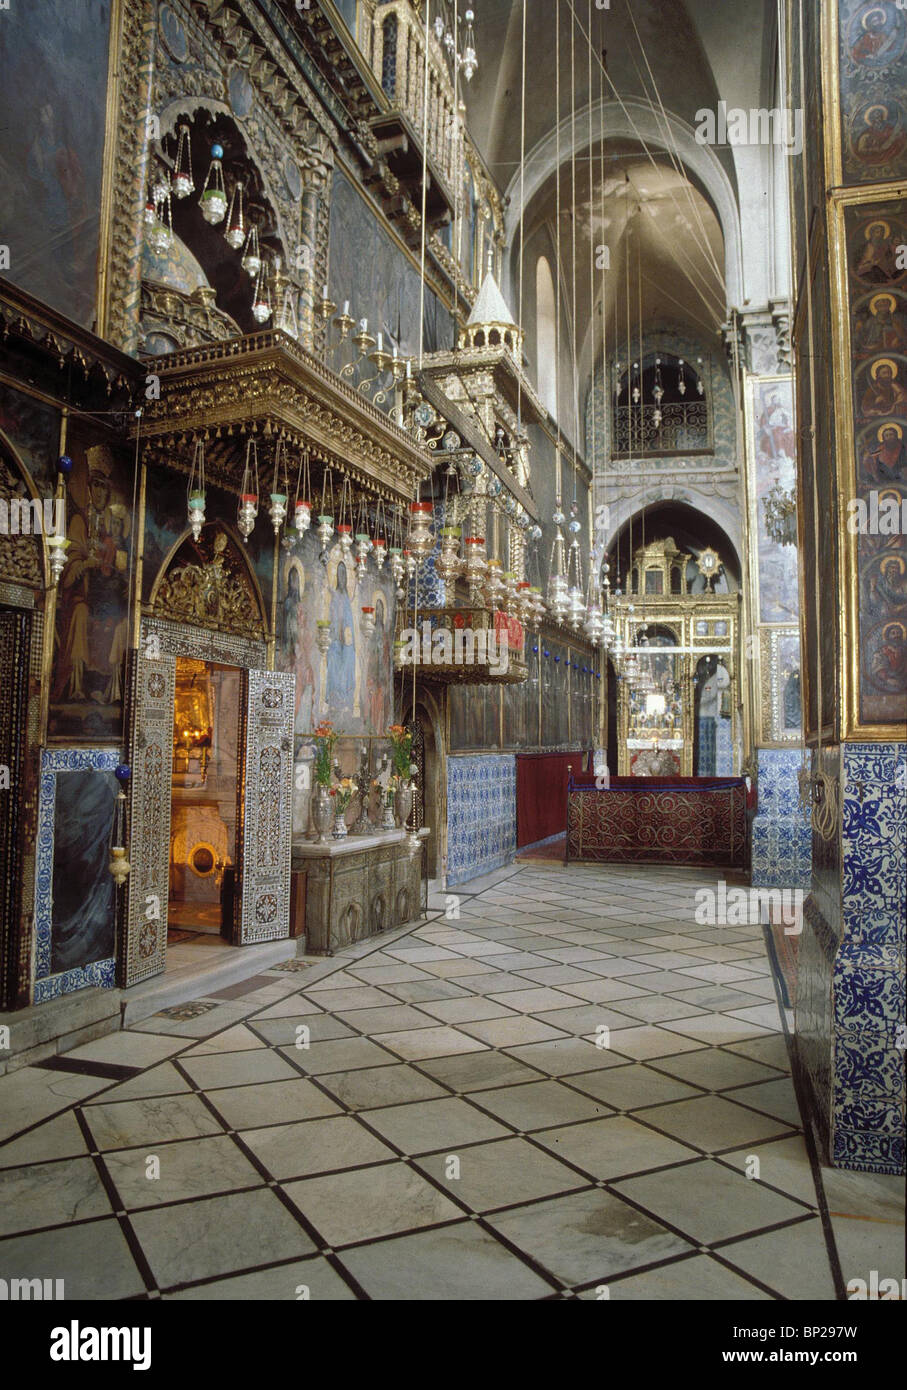 JERUSALEM - THE ARMENIAN QUARTER THE CHURCH OF ST. JAMES. THE CHURCH WAS BUILT BY THE CRUSADES IN 1160 ON THE SITE - Stock Image